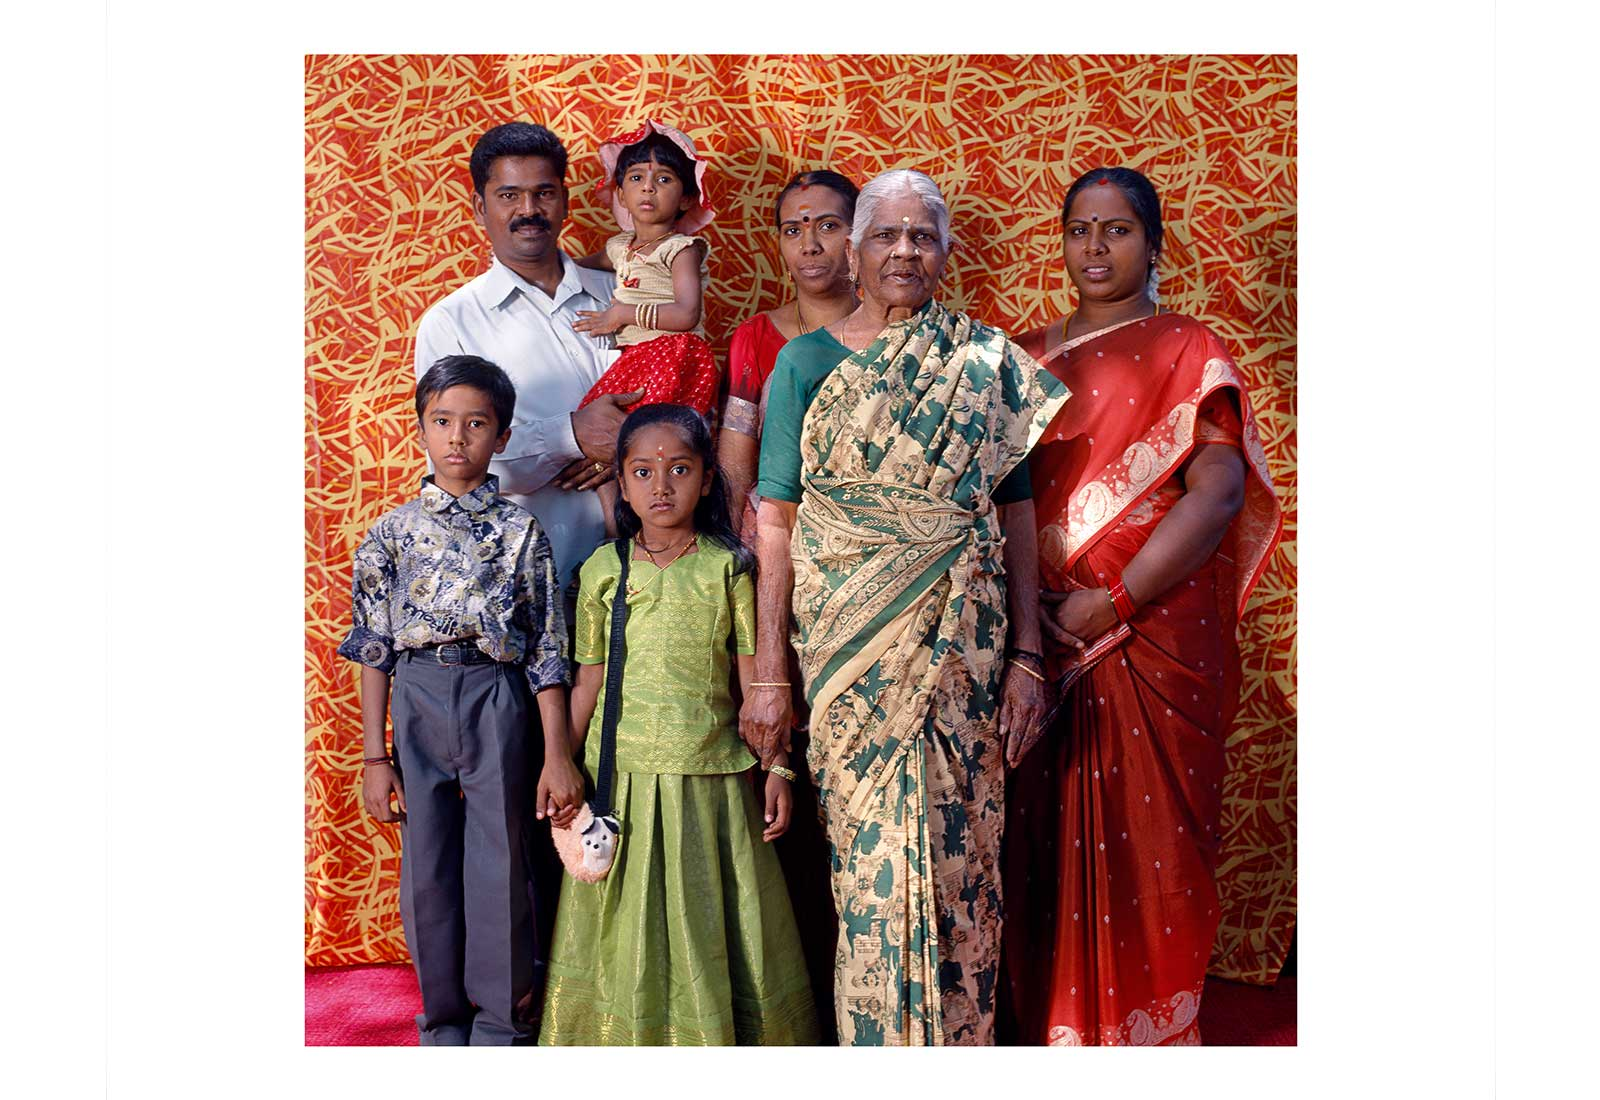 The Raghunandan family -